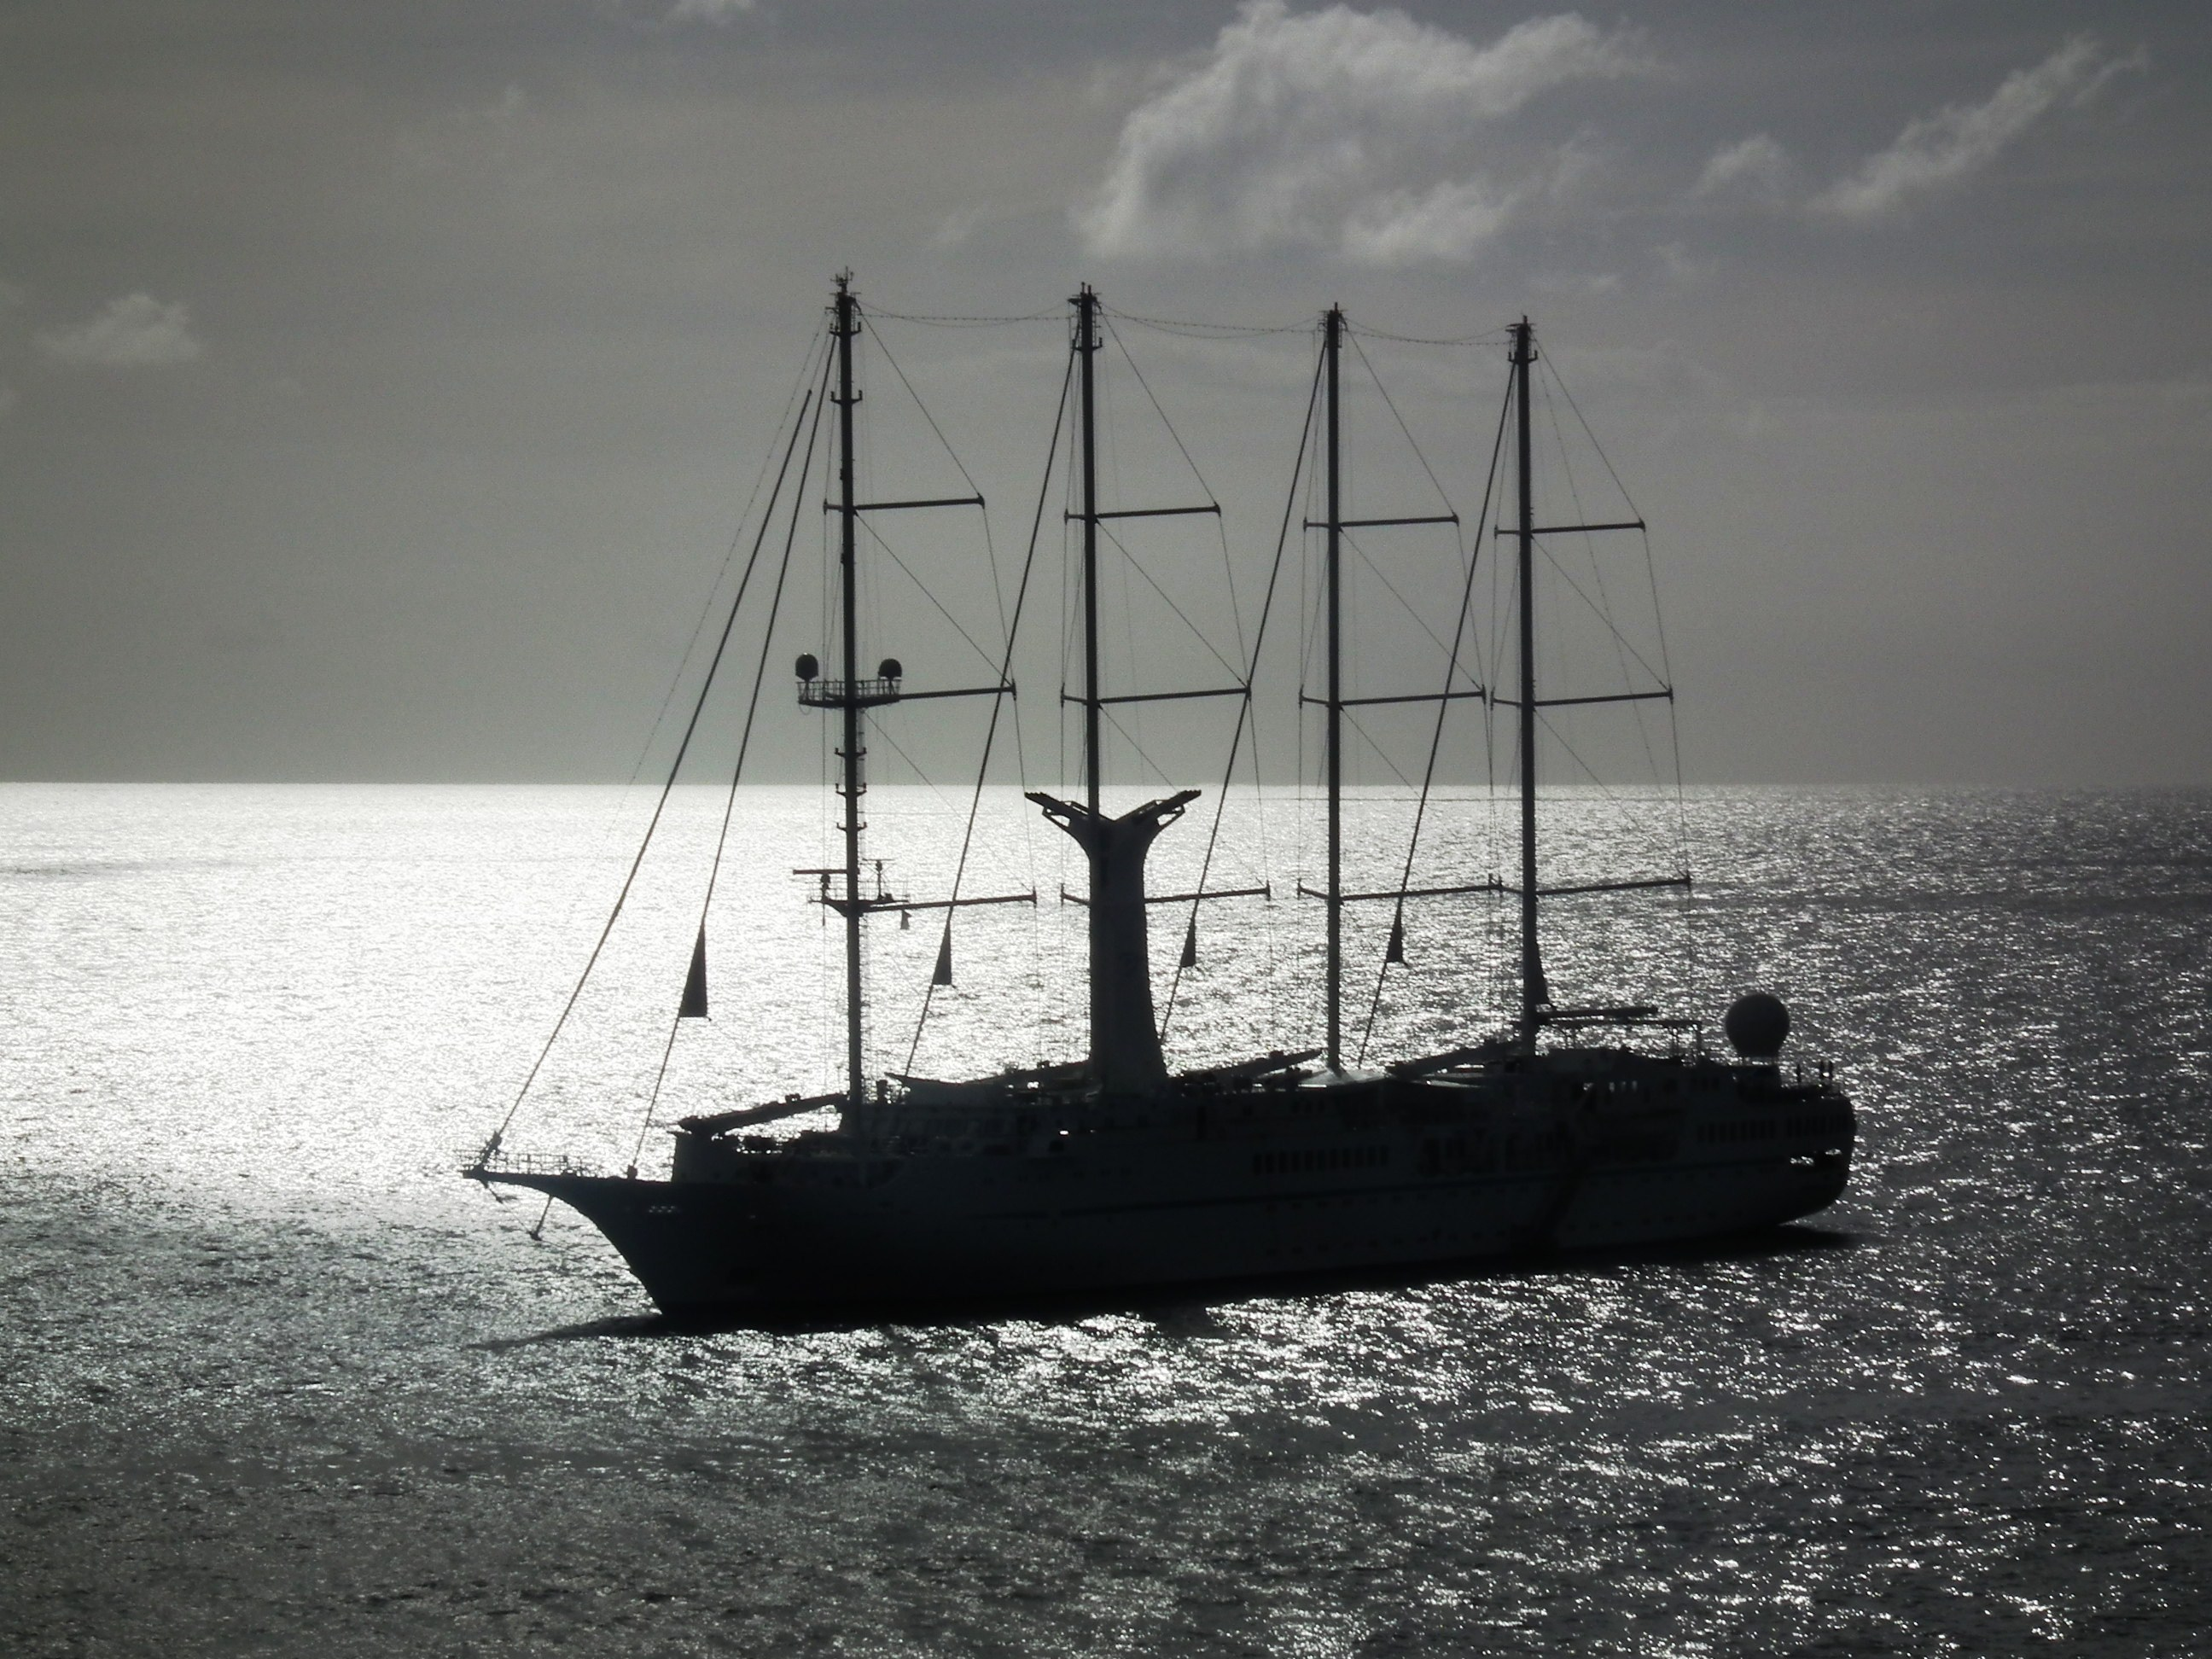 Star Pride ran aground while anchoring; all aboard transferred to another ship for trip home